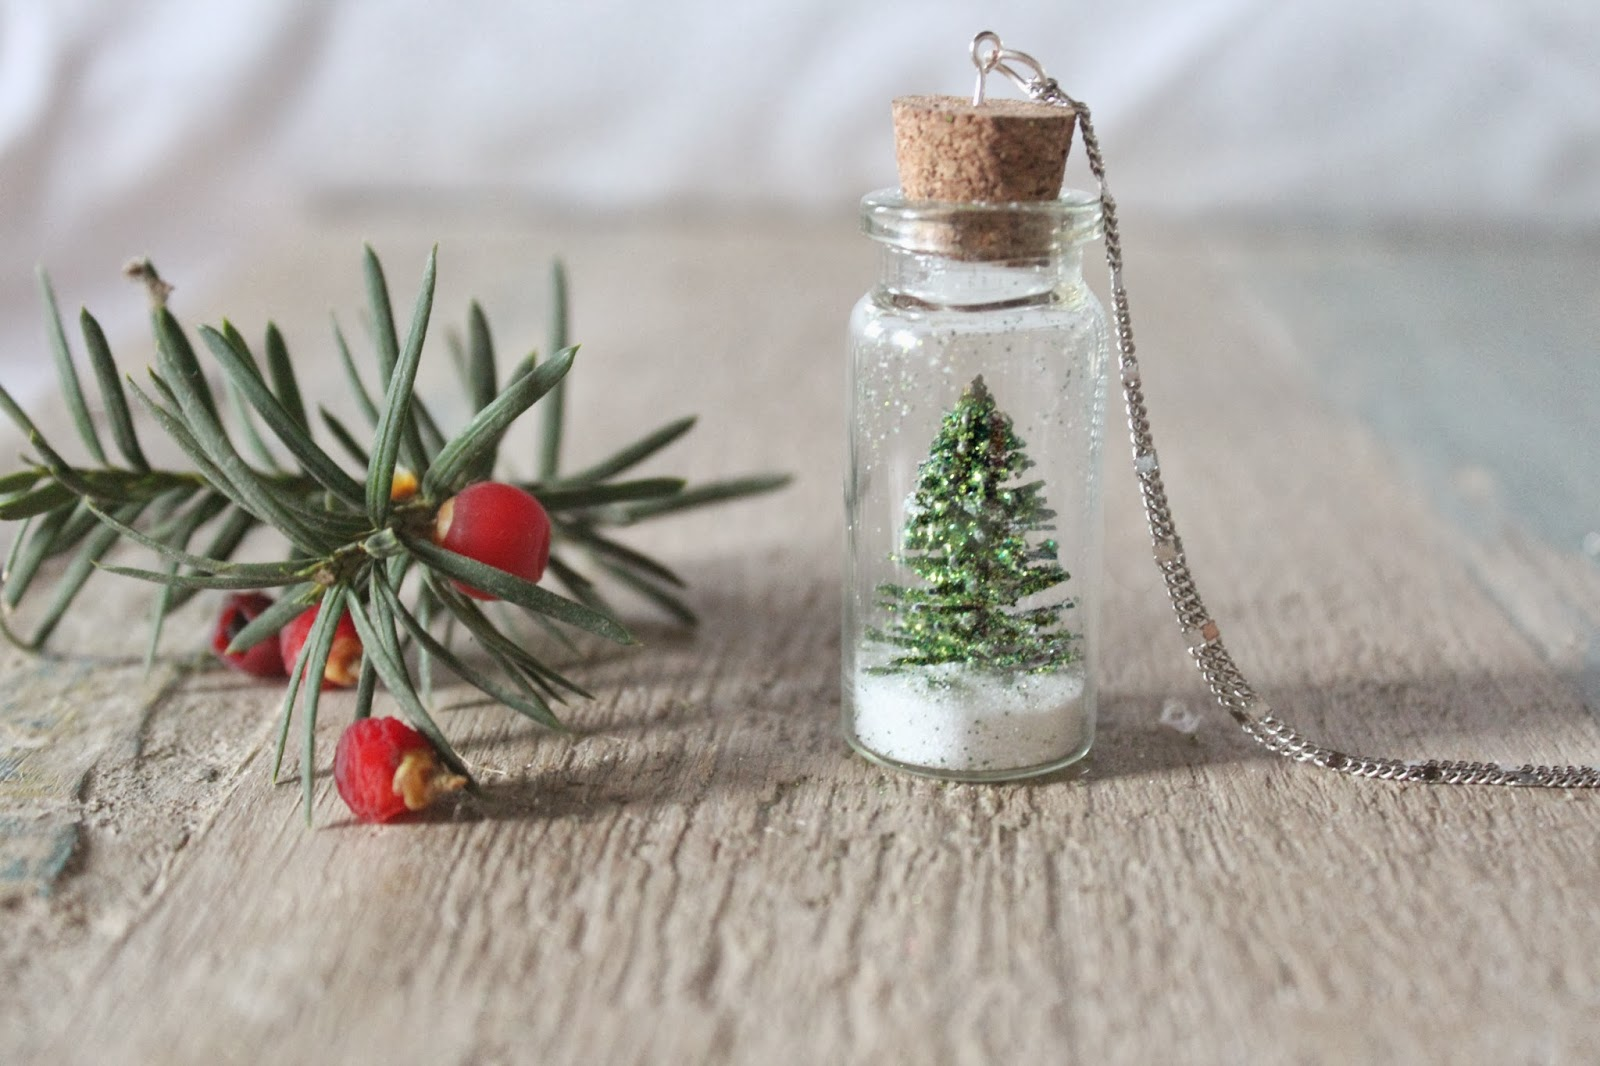 Theresa joy 365 days of pinterest day 26 diy christmas for Petit objet de decoration